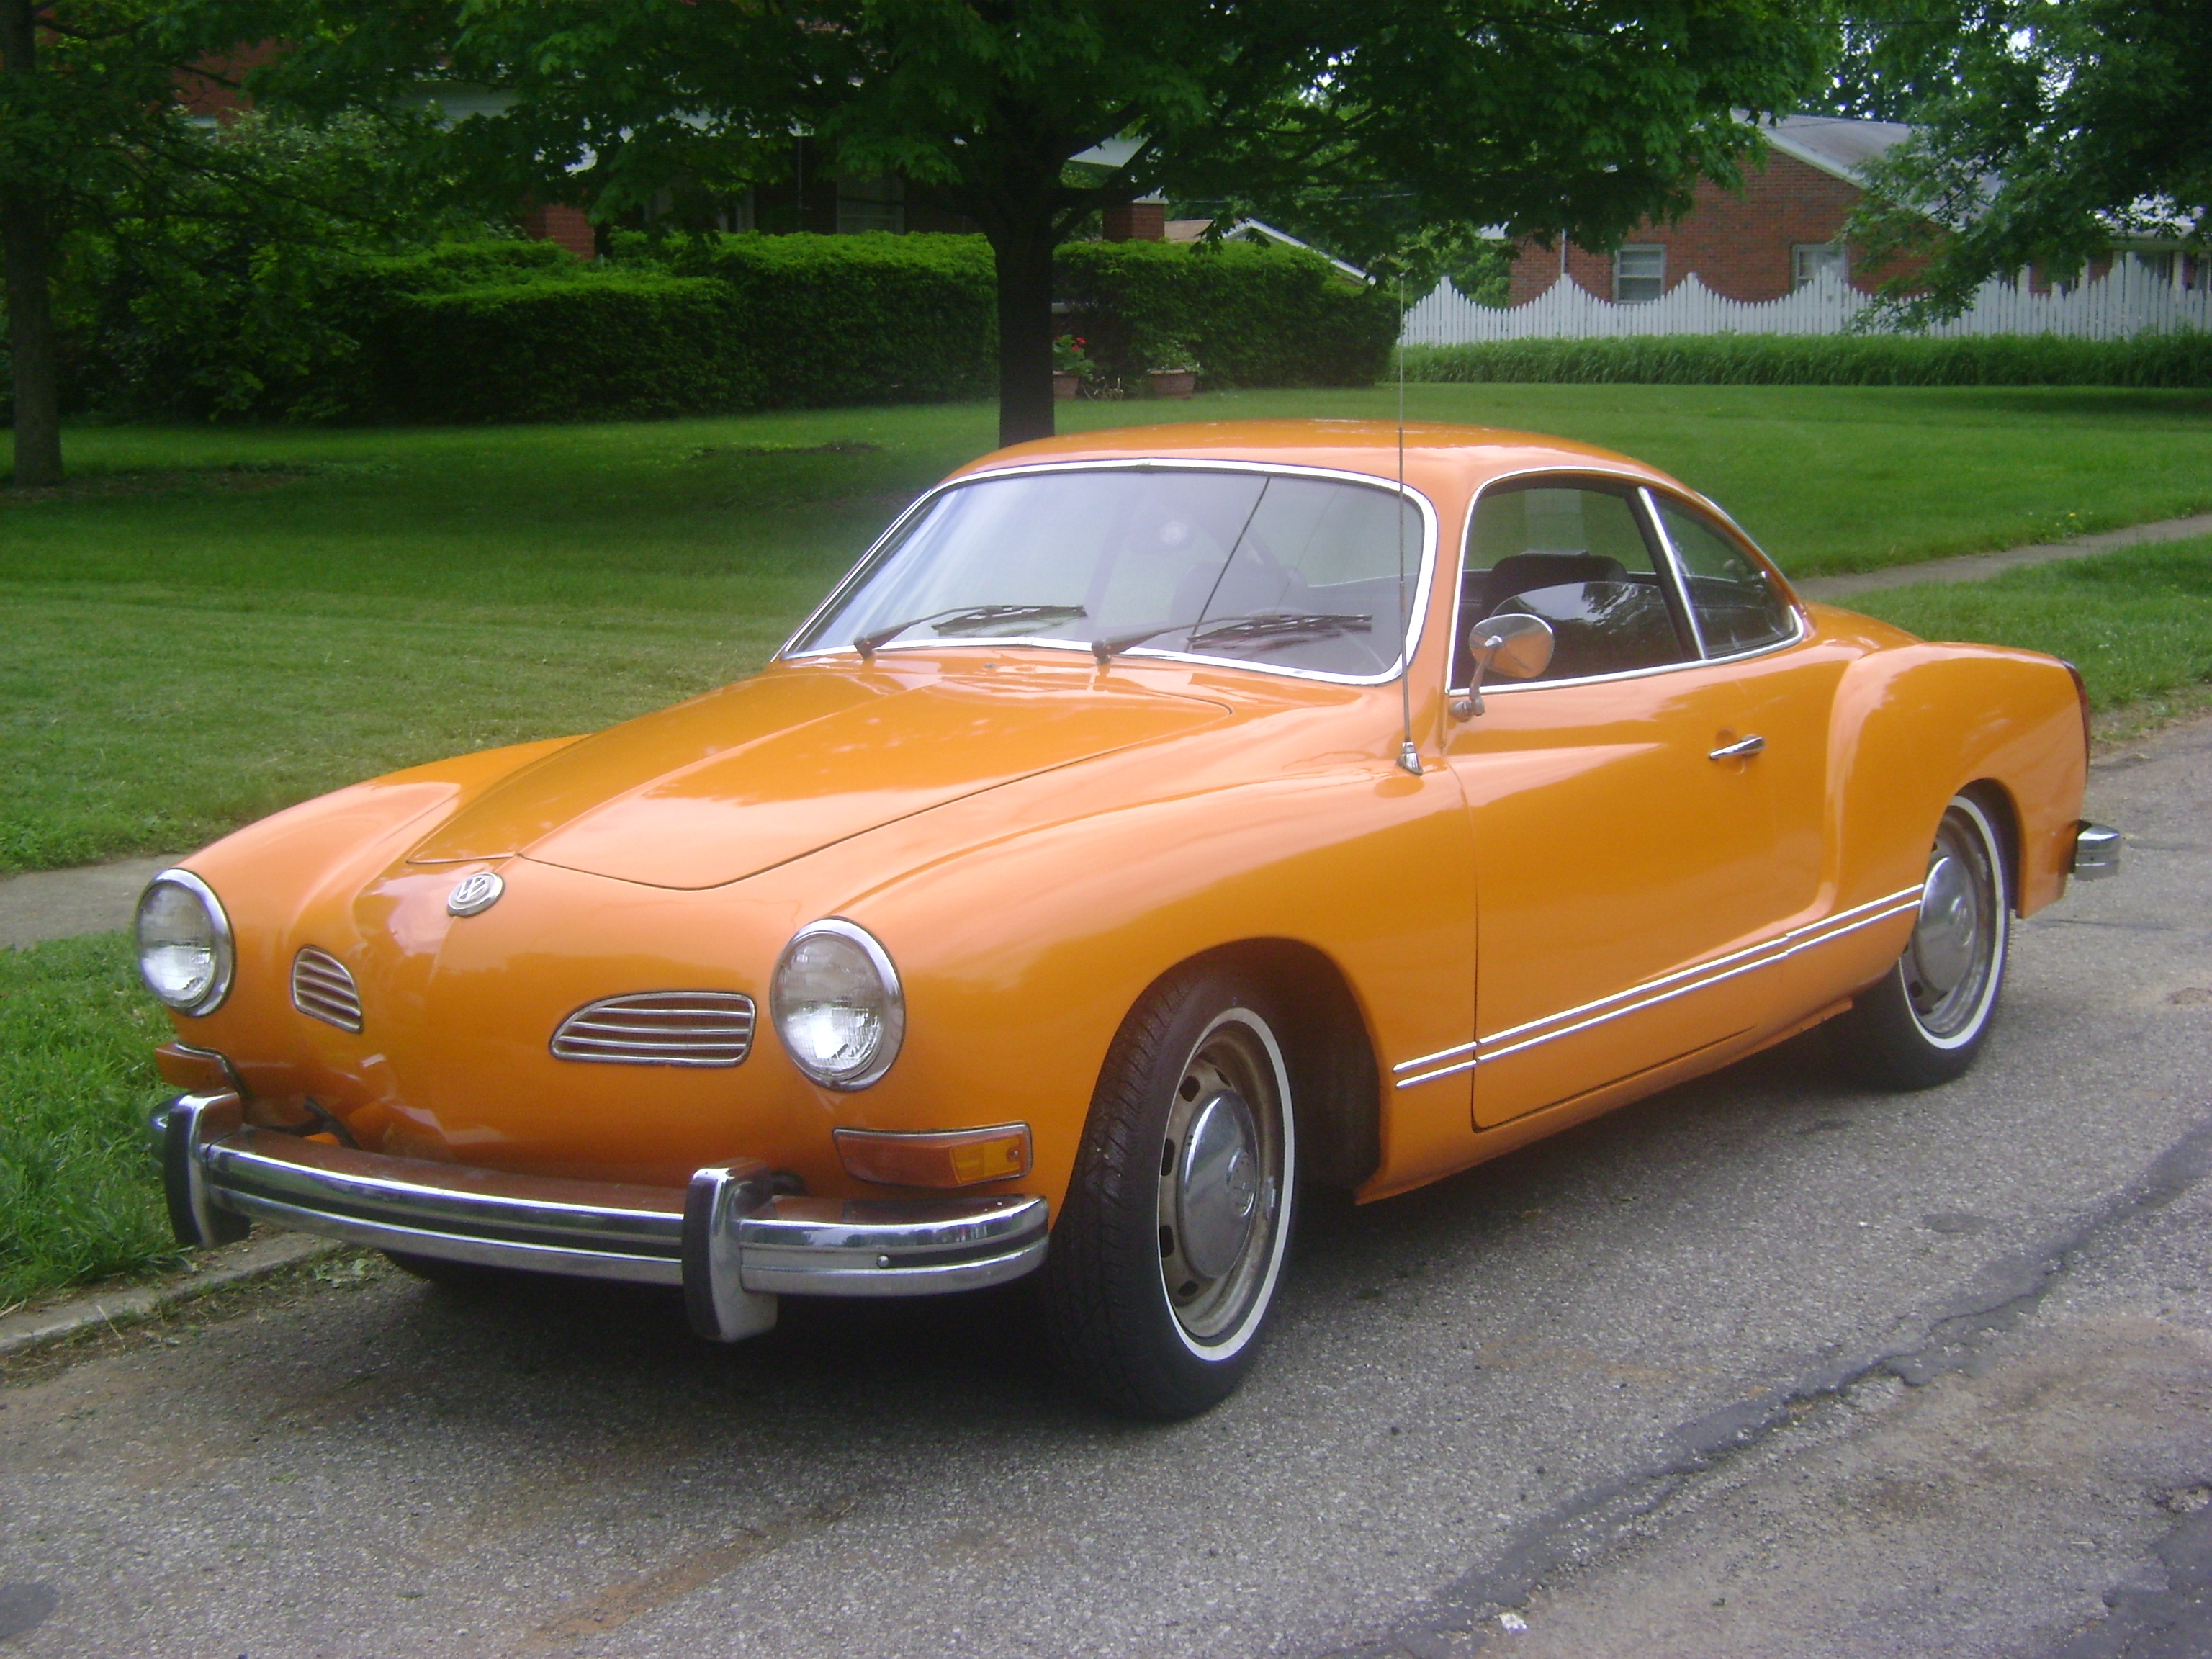 Ghia_Front_View.JPG